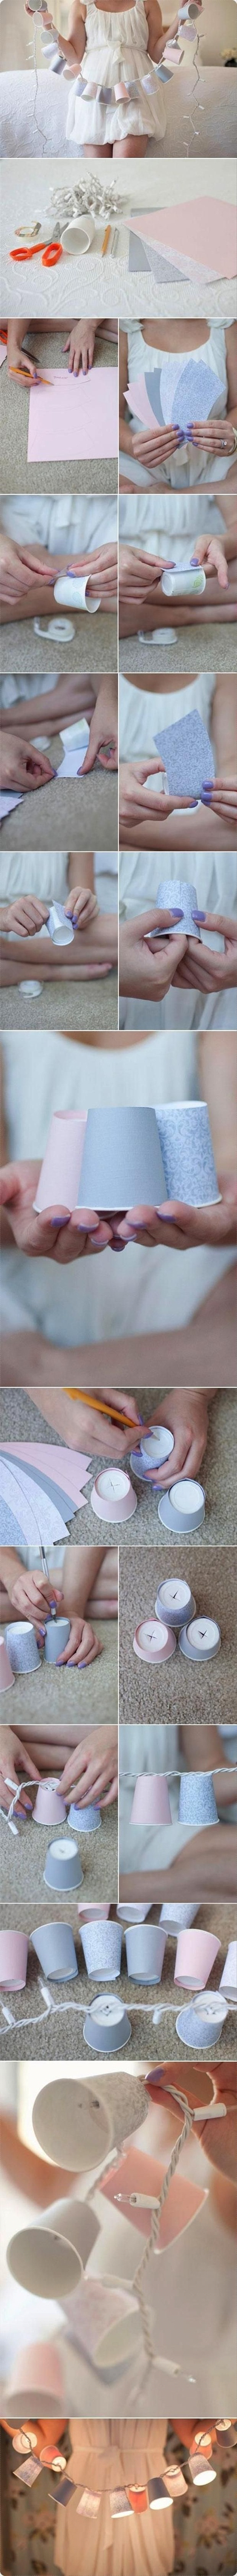 Paper Craft Ideas3